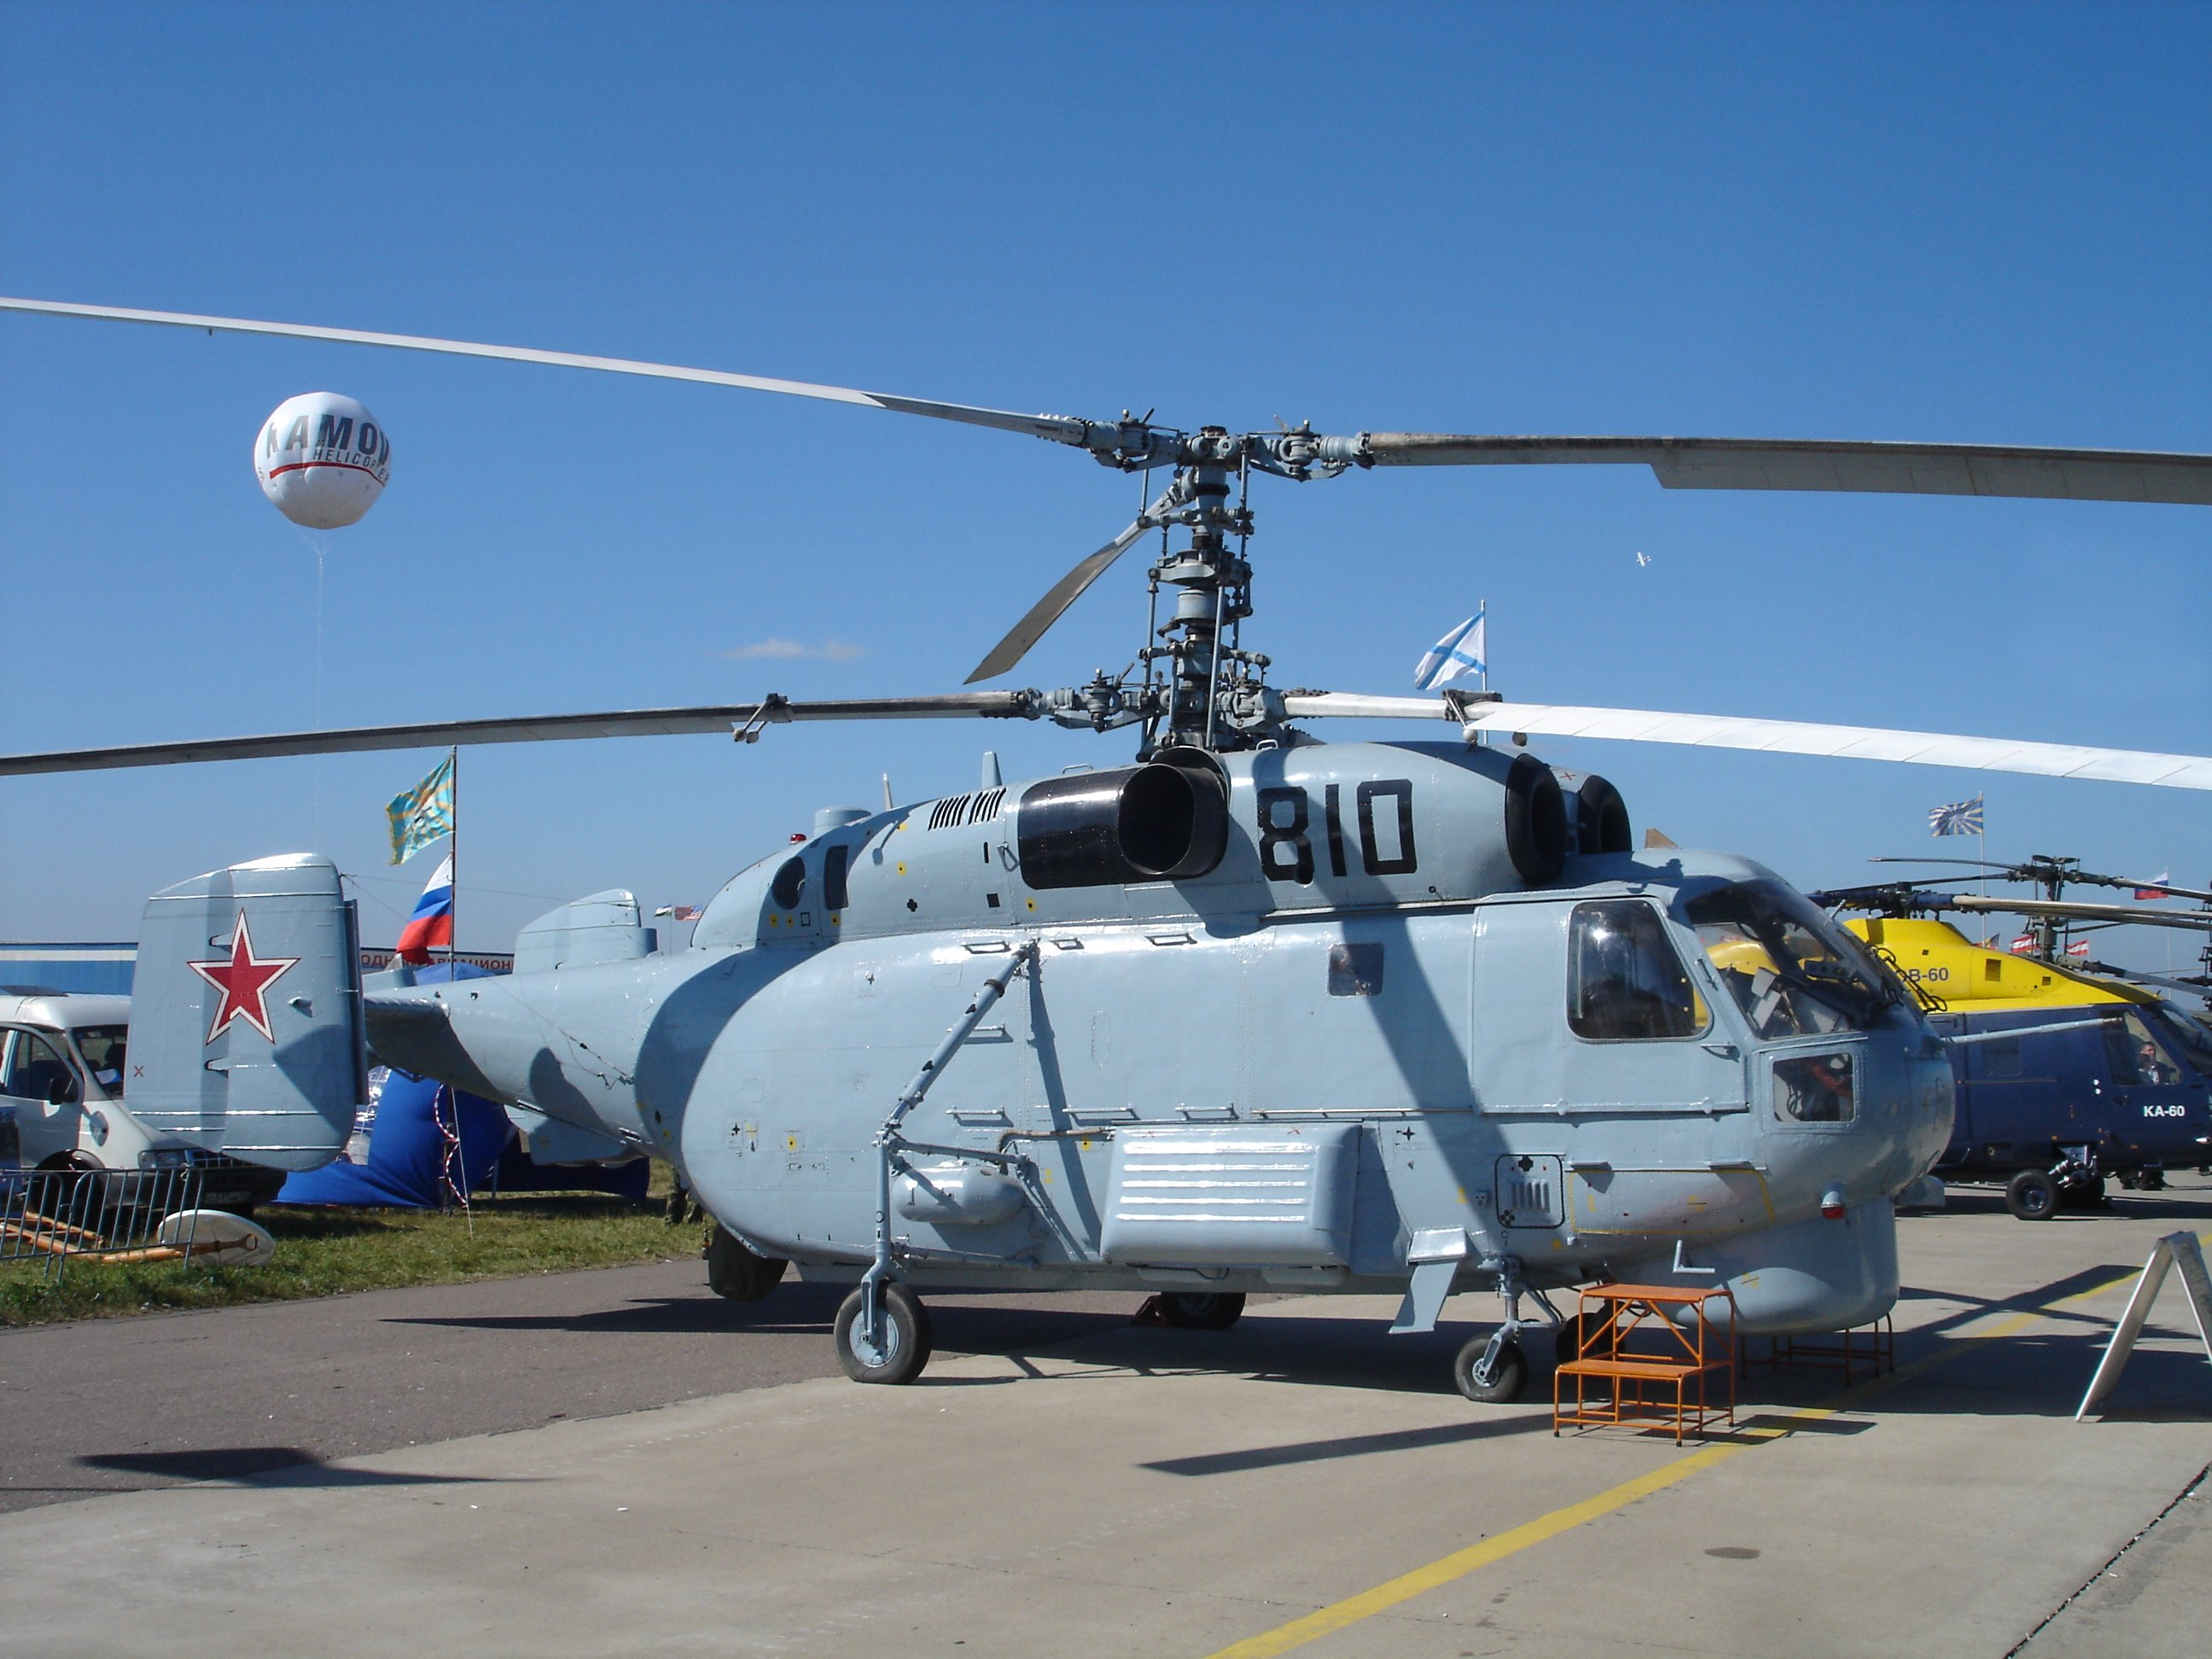 Kamov - Wikipedia, the free encyclopedia